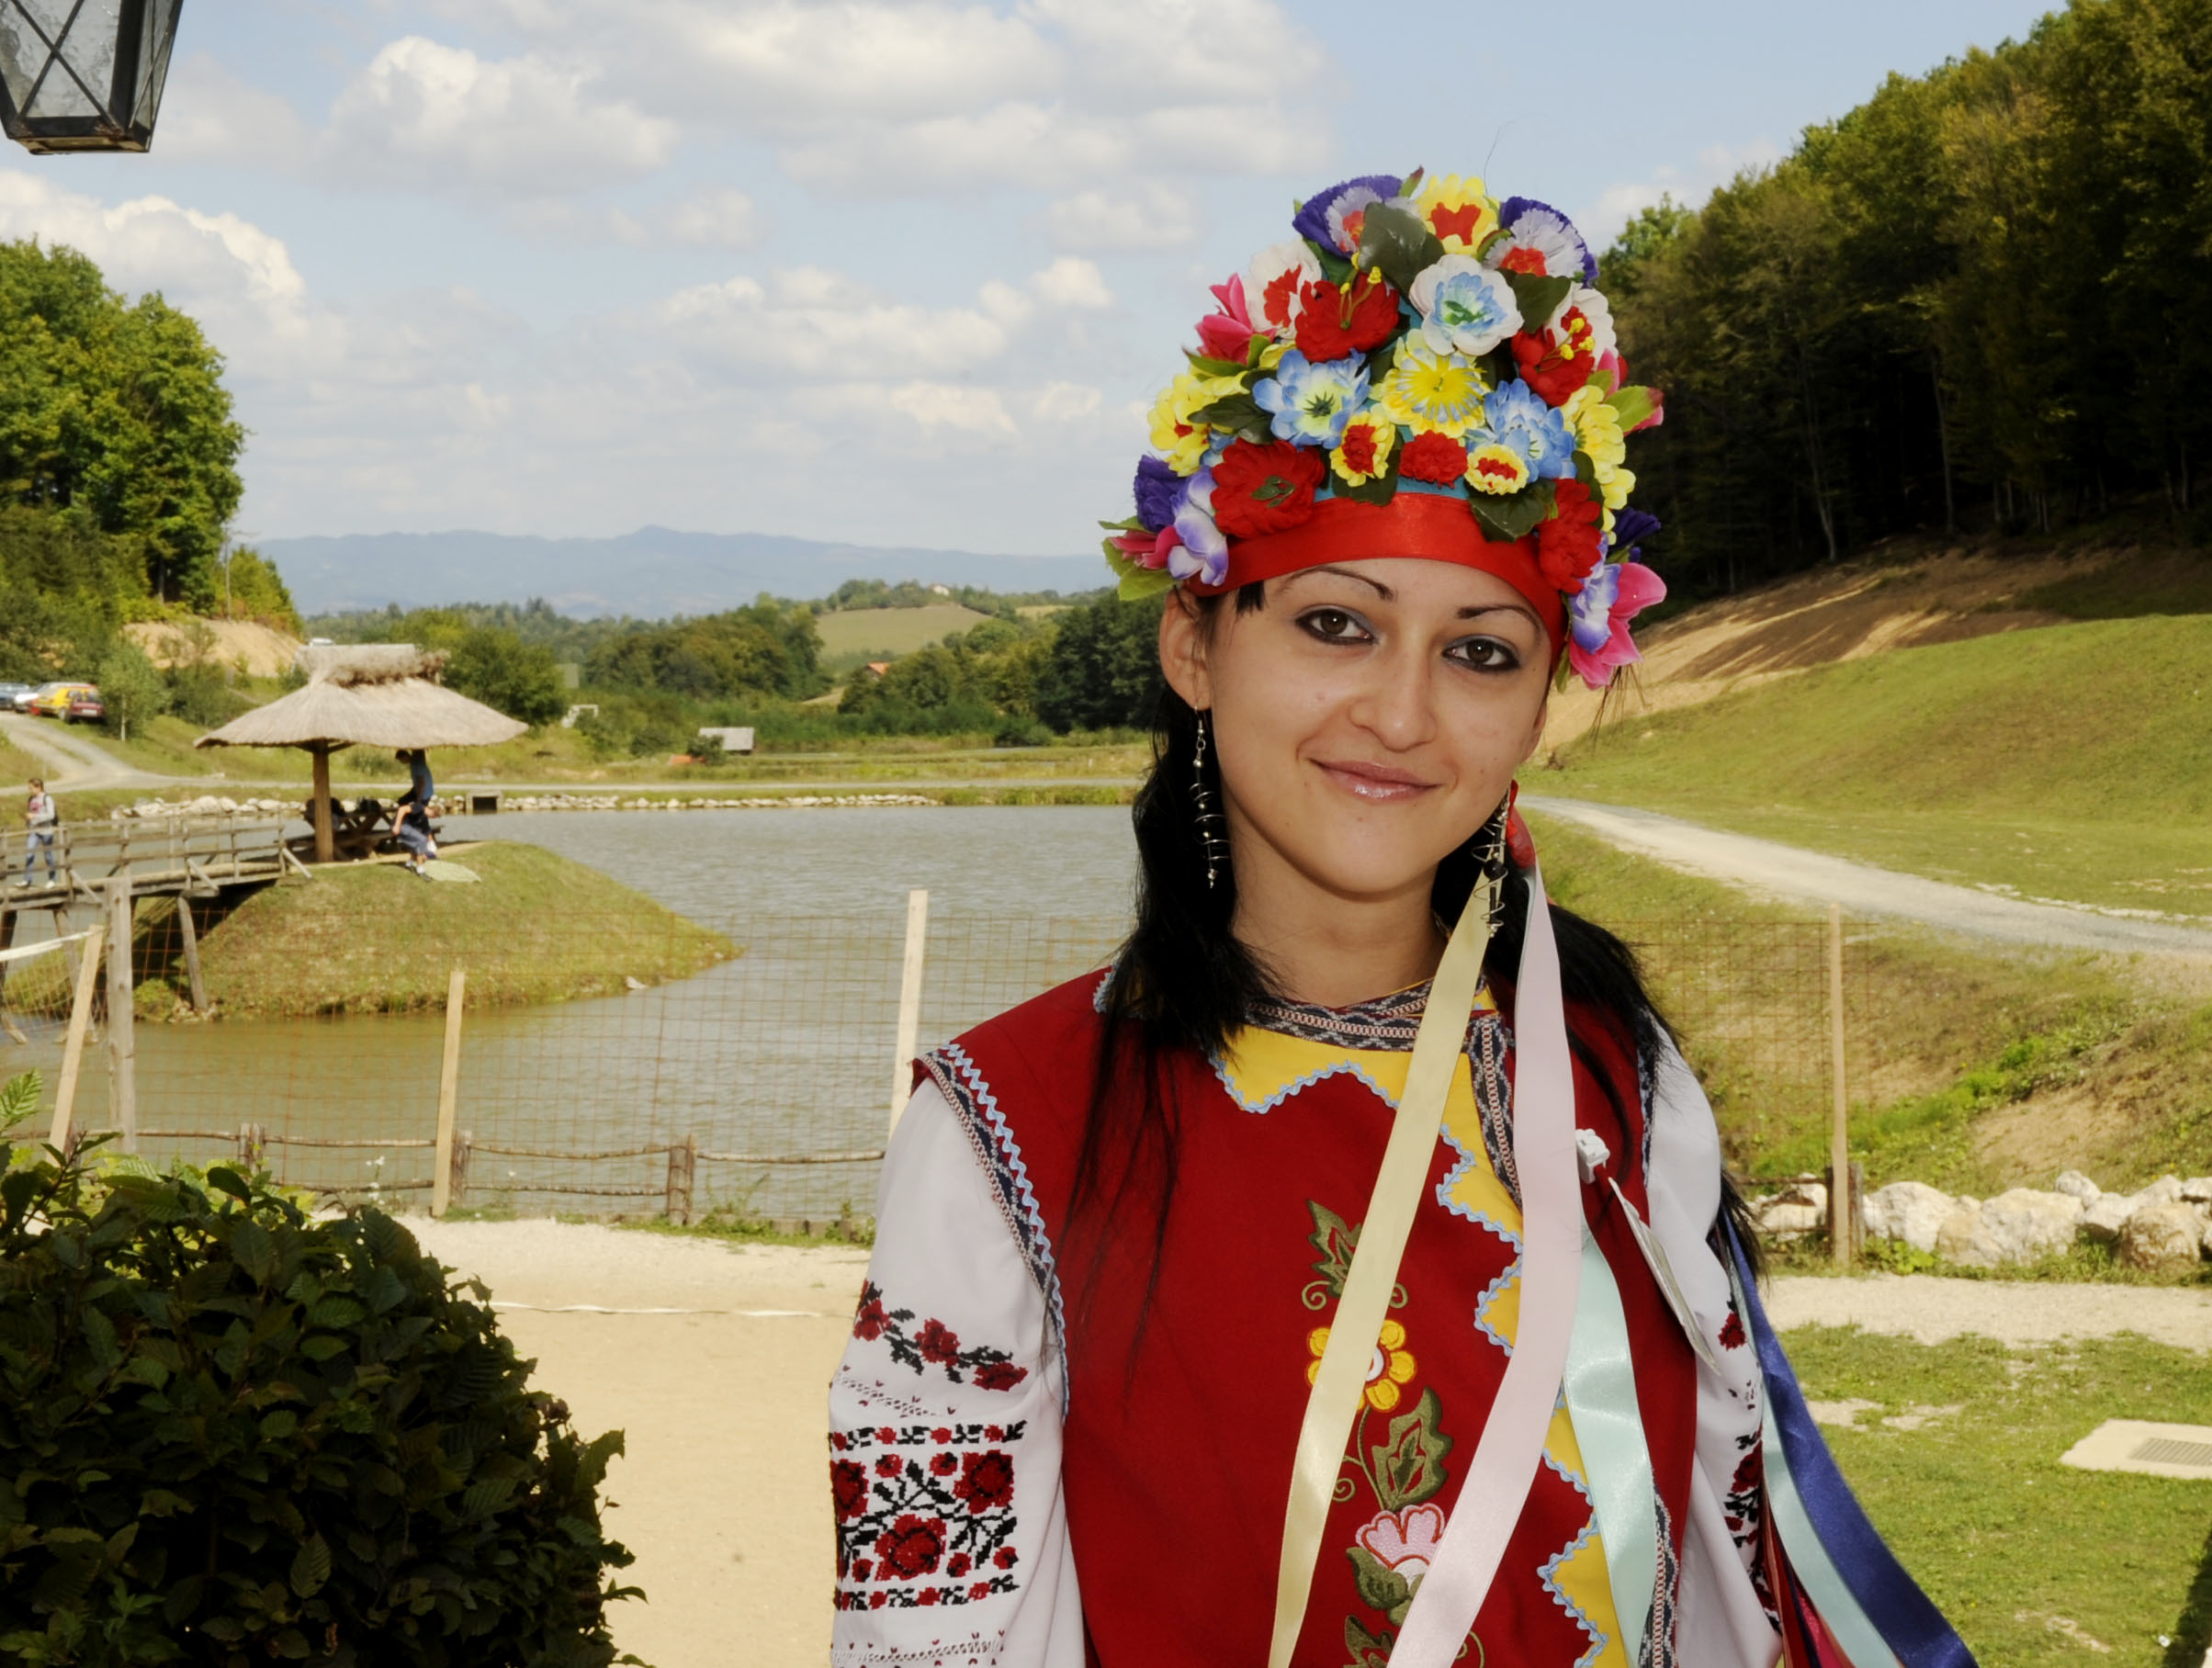 Traditional Bosnian clothing